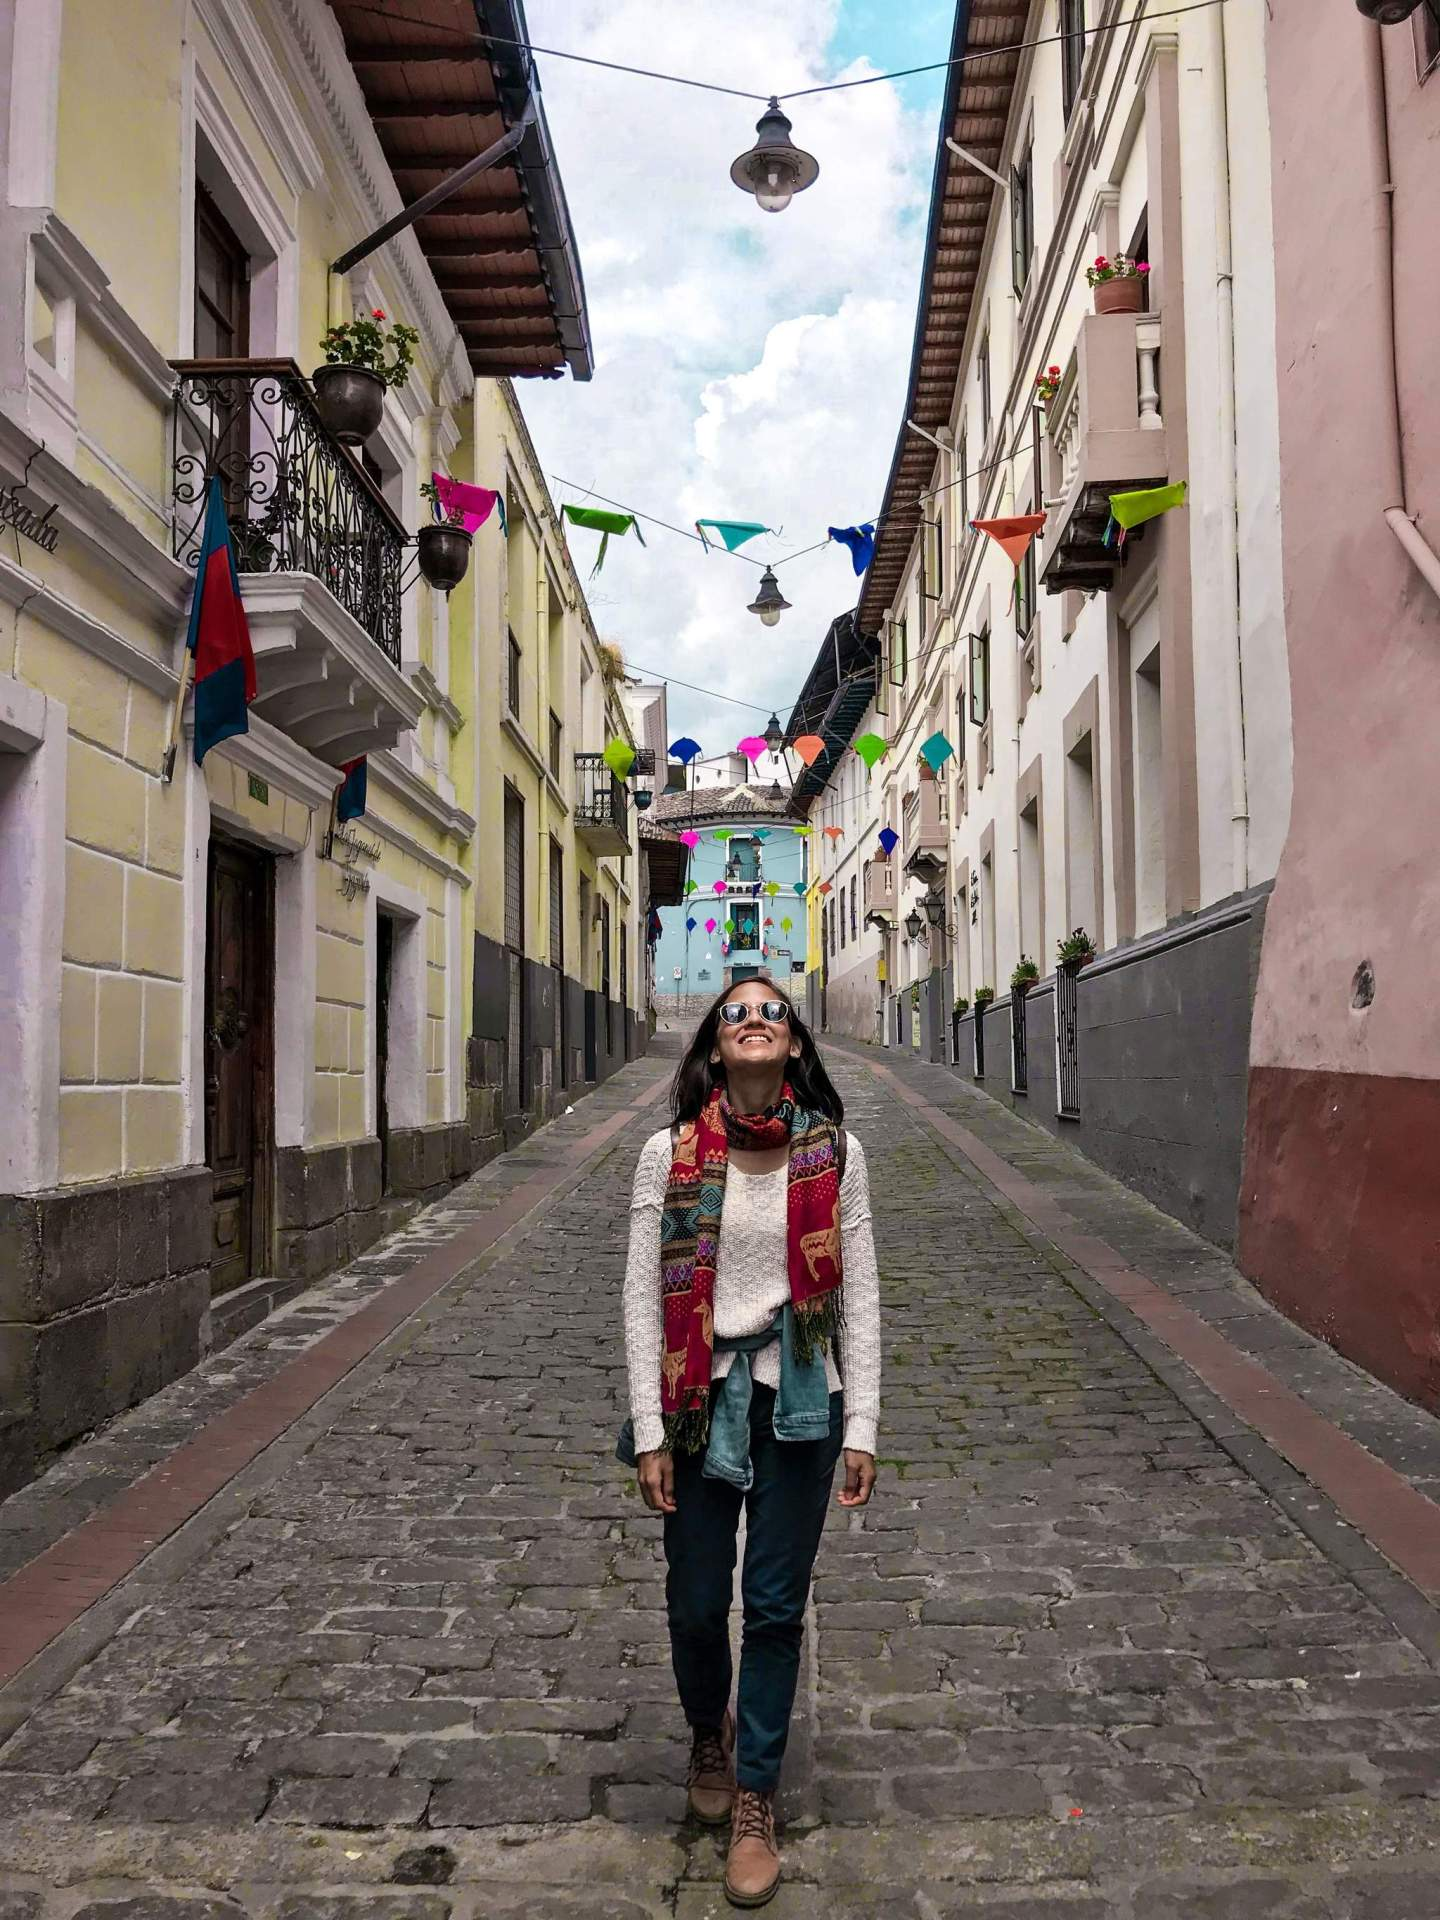 5 reasons to book a hotel microstay in South America